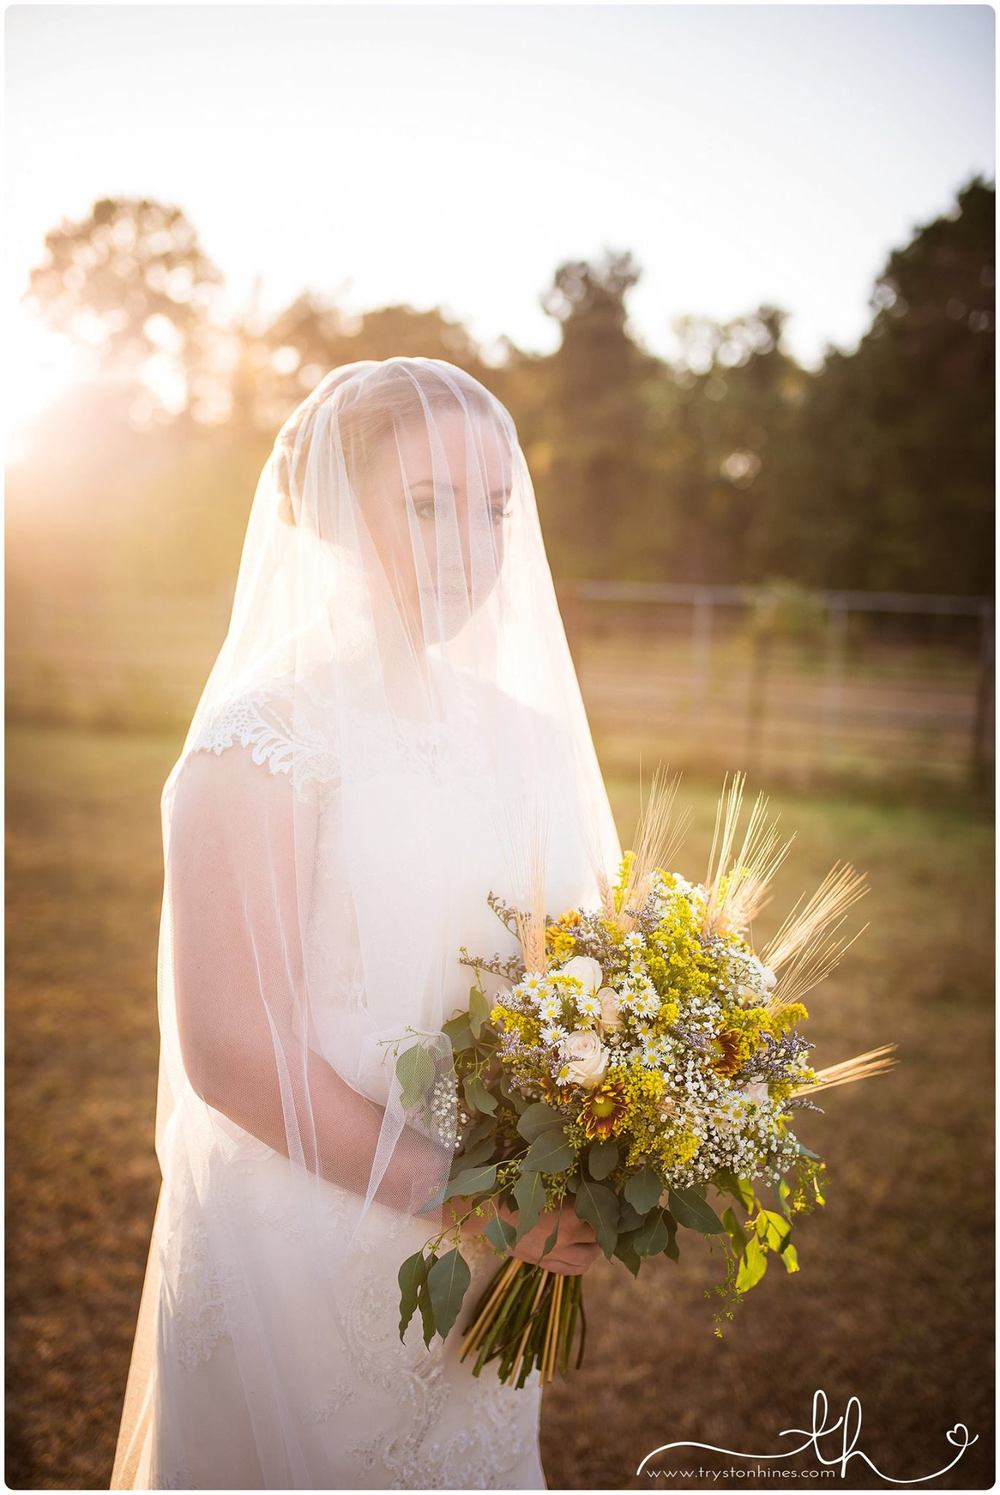 Tryston Hines Photography, from Brittani's bridals at The Barn